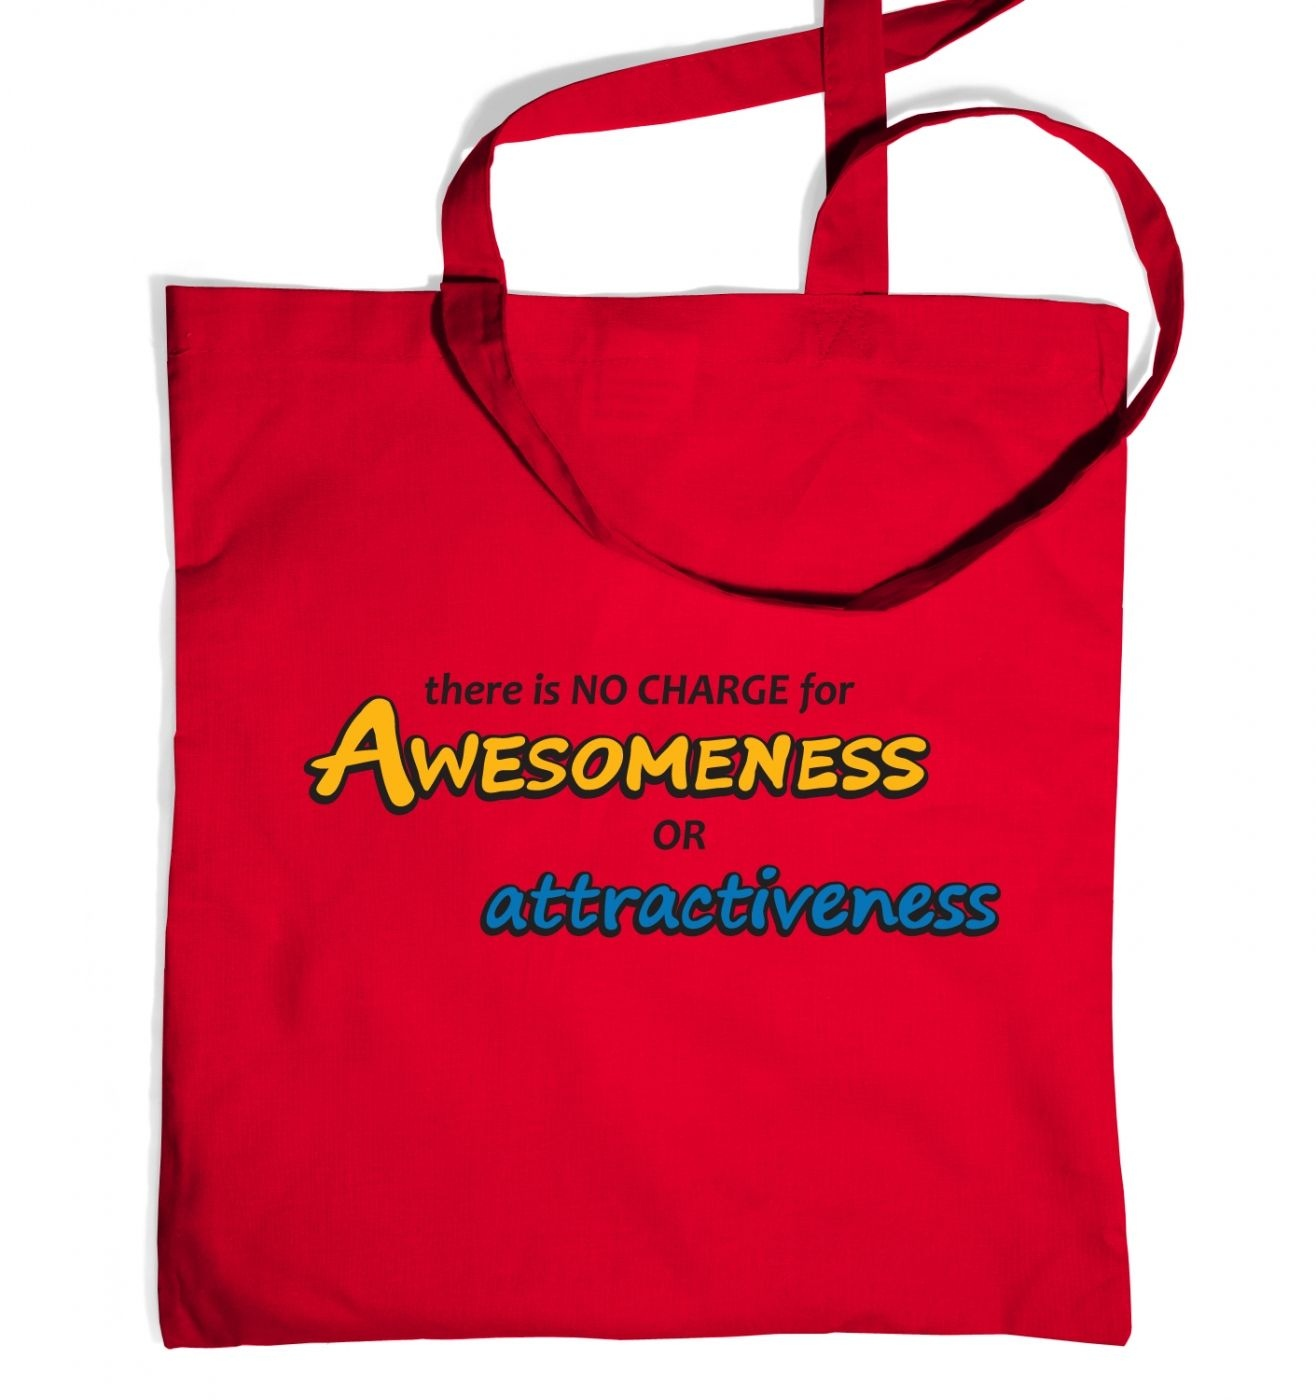 Awesomeness Tote Bag Inspired by Kung Fu Panda